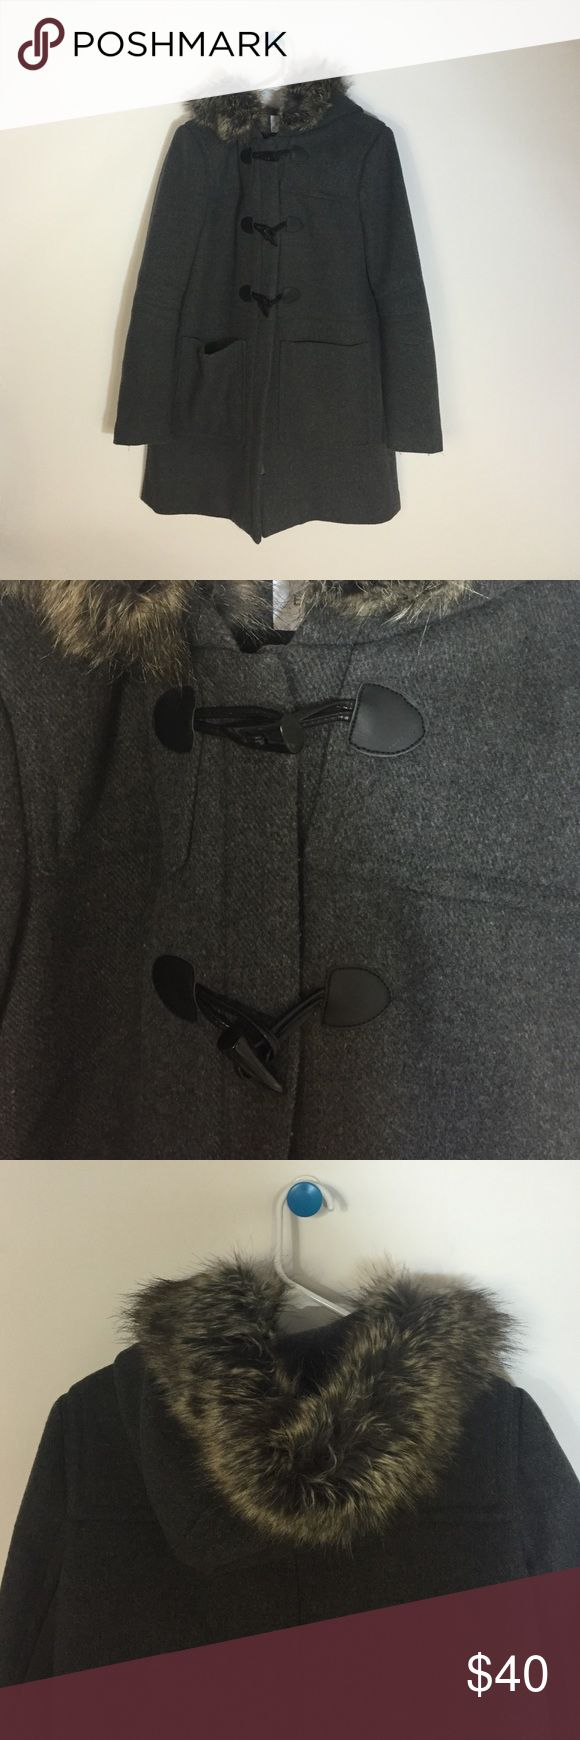 Bcbgeneration coat Charcoal grey peacoat. two front pockets. zipper and toggle closure. Hoodie with removable fur. worn one winter season BCBGeneration Jackets & Coats Pea Coats